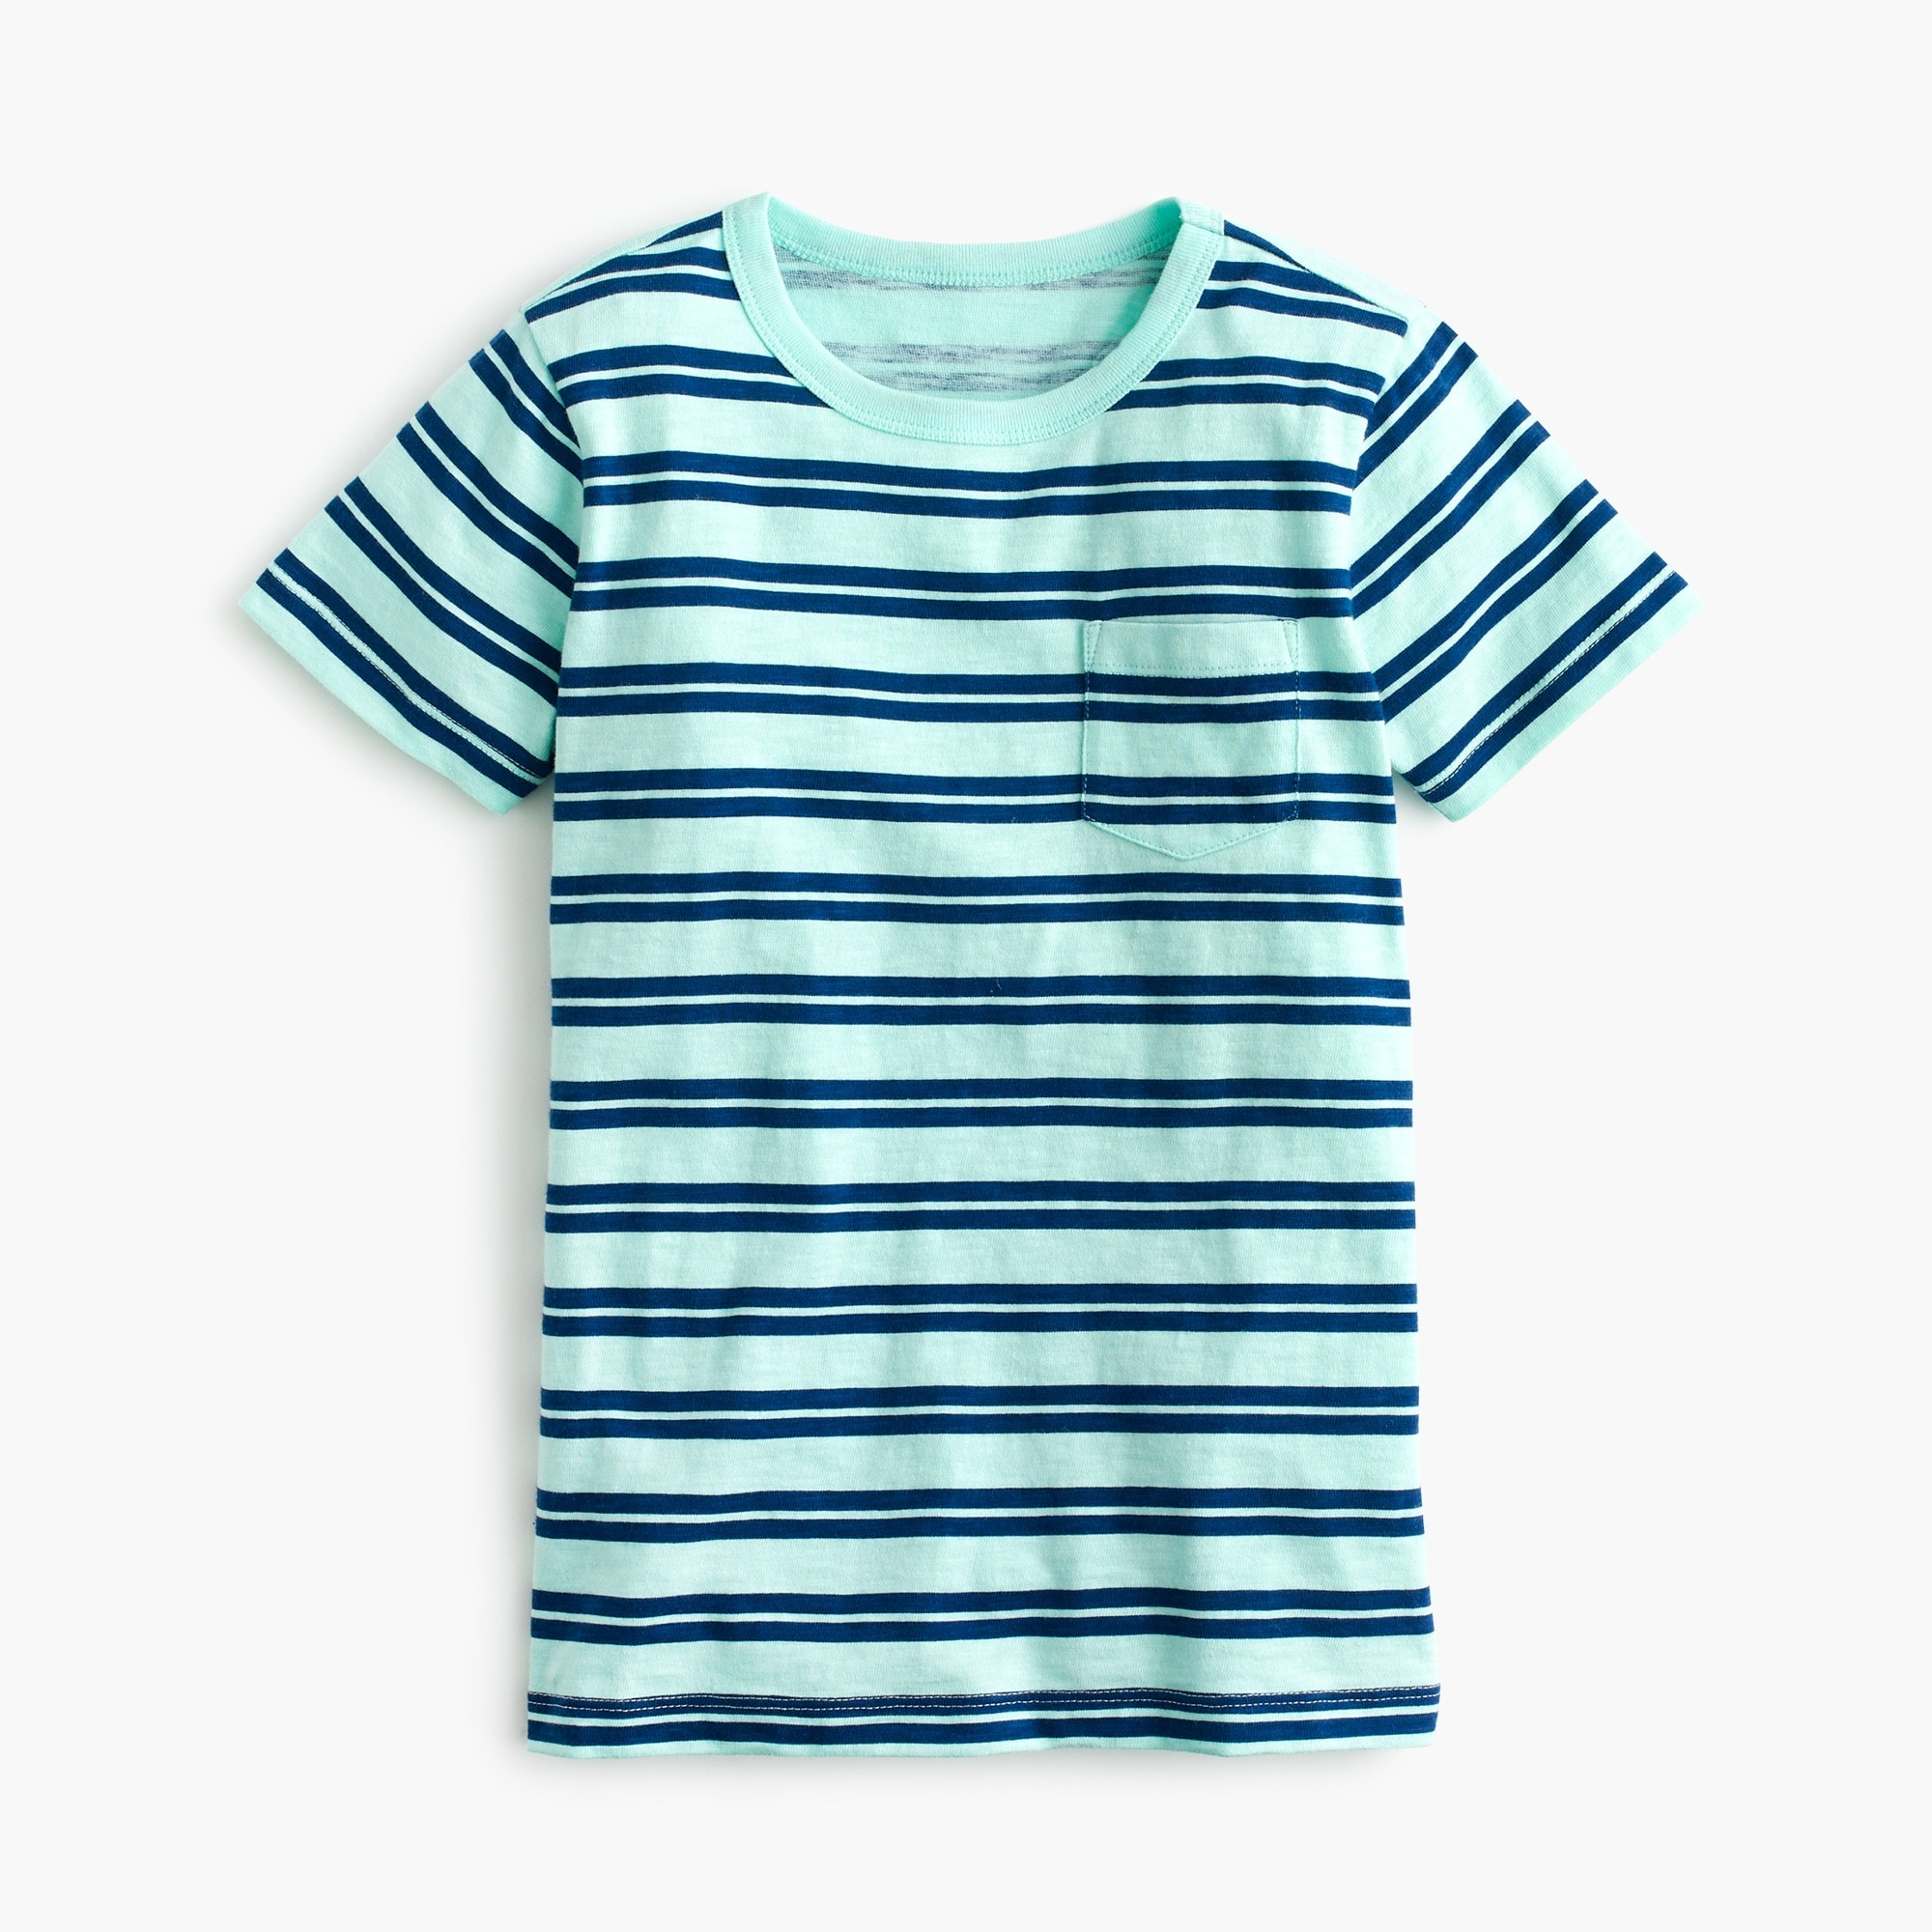 Boys' striped pocket T-shirt boy t-shirts & polos c